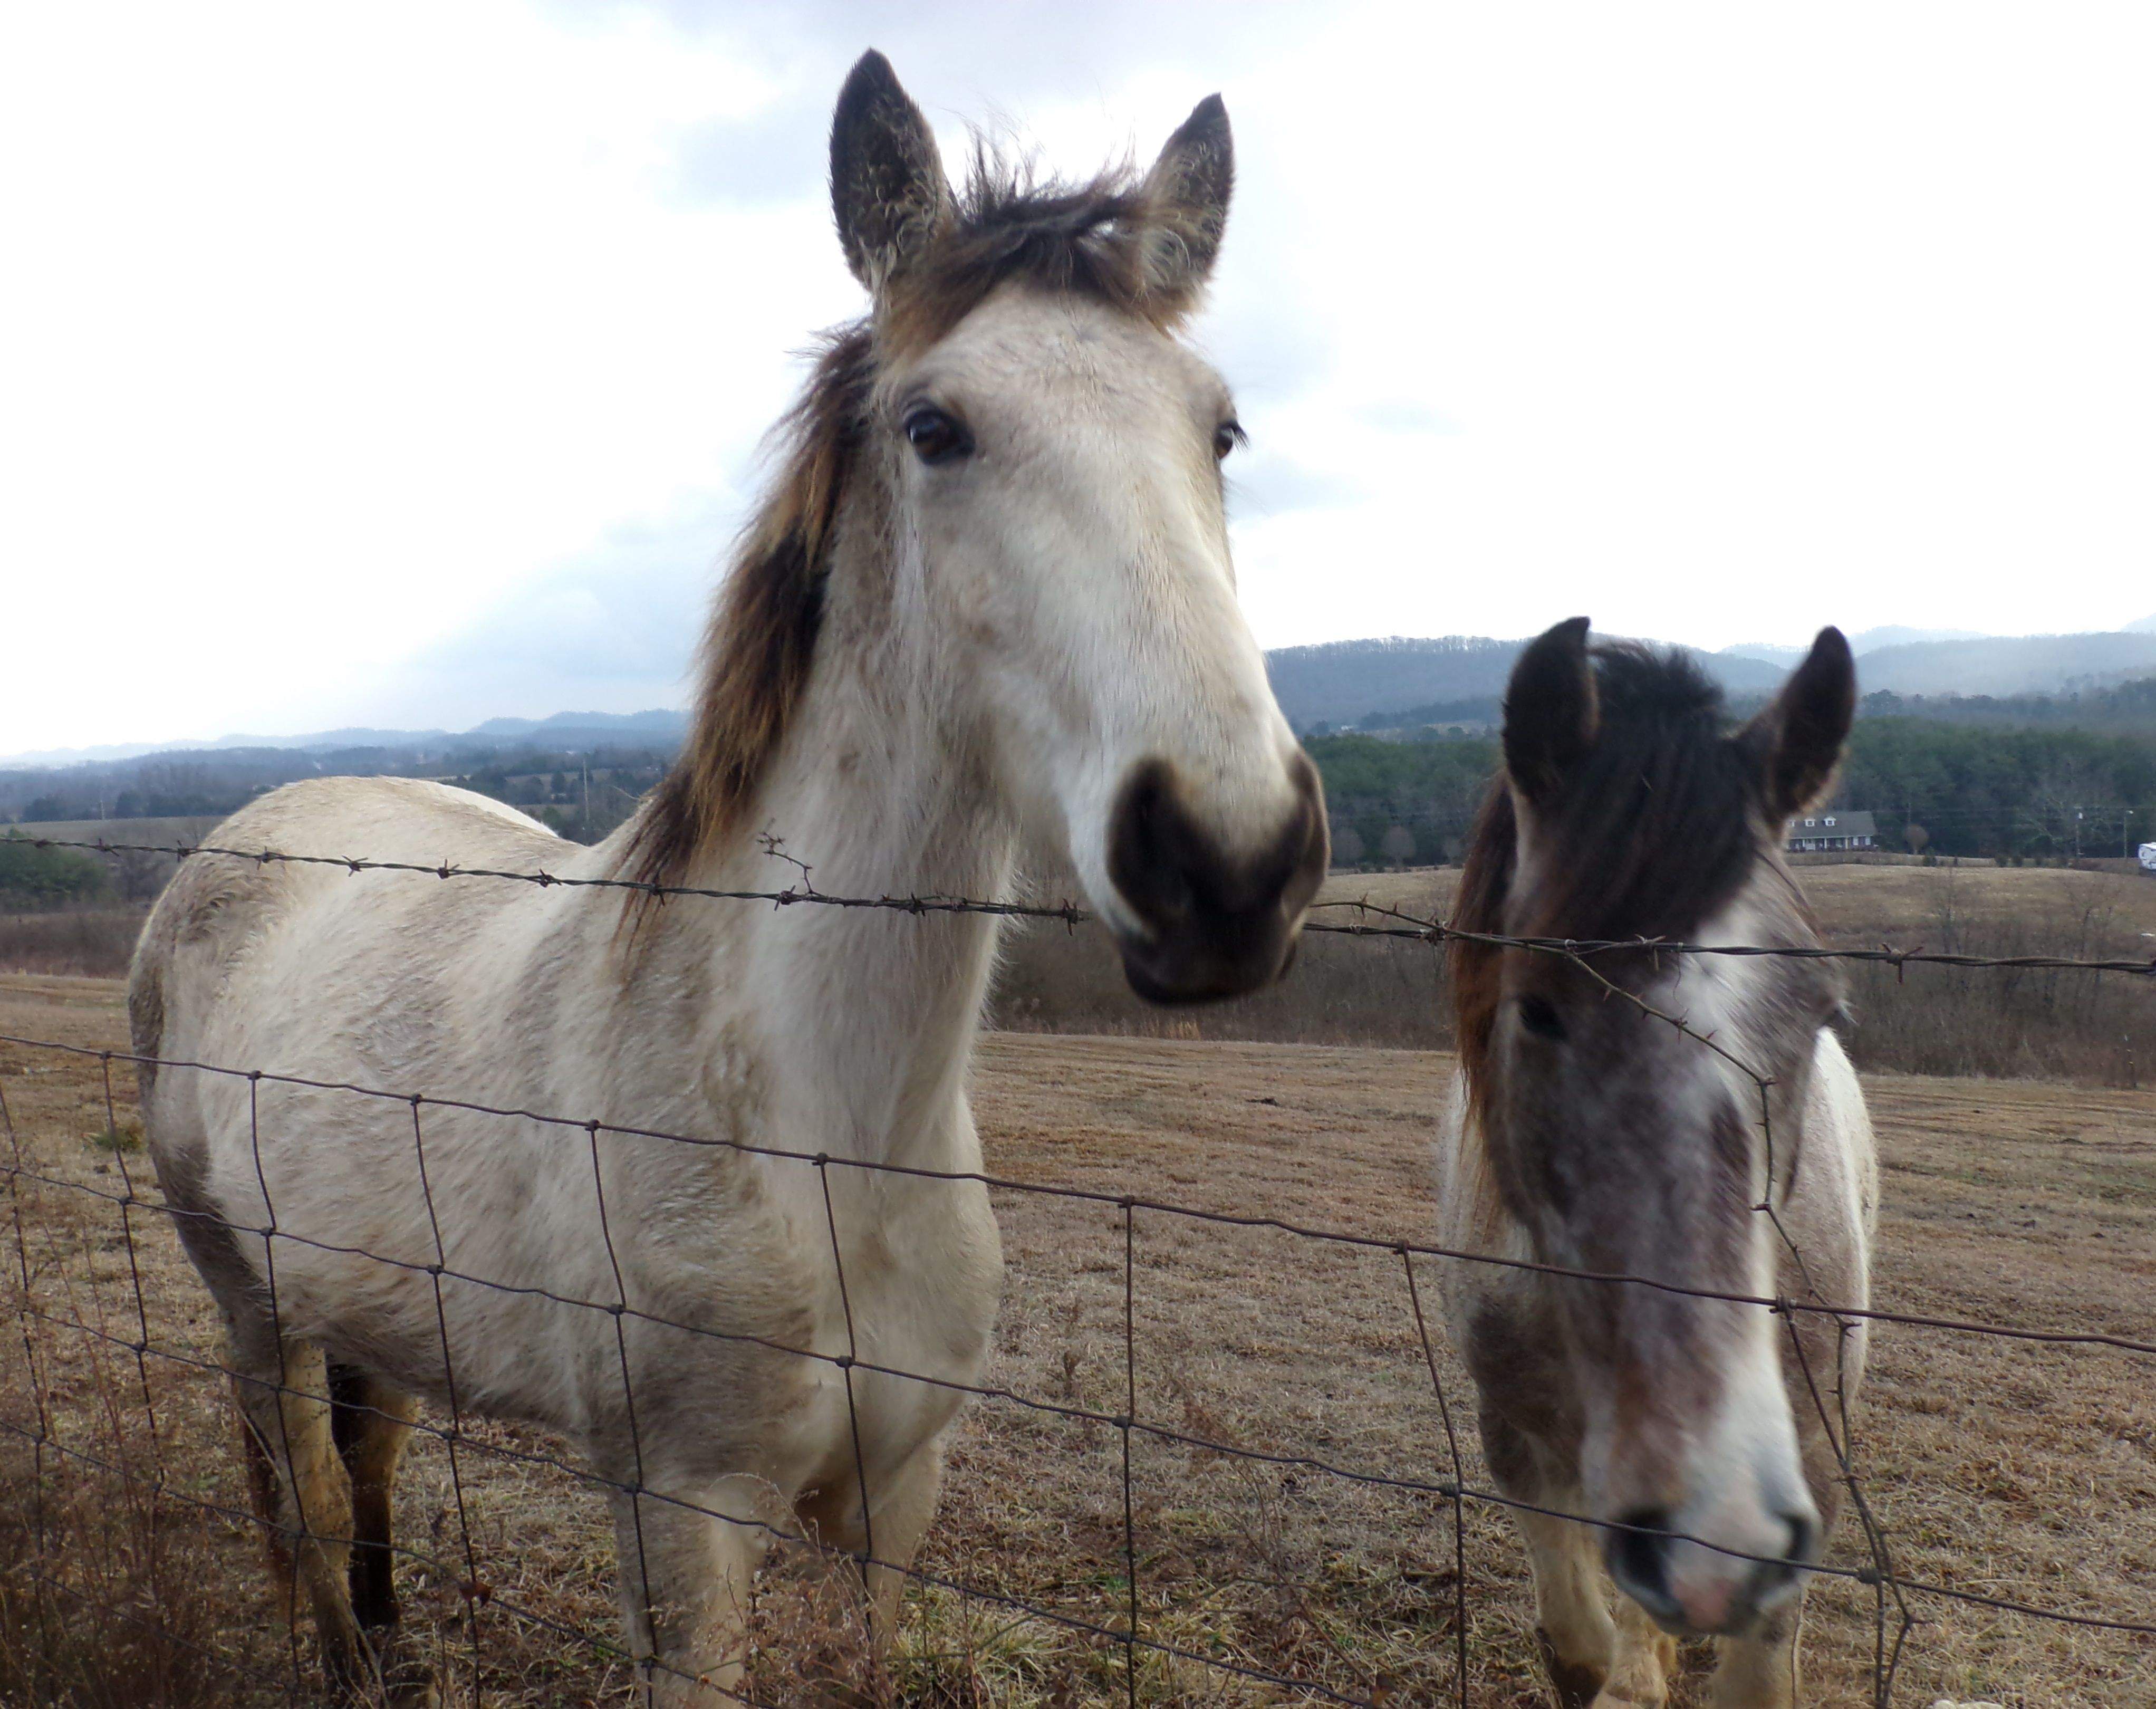 I just had to pull over & #pet these guys! I cant pass up on loving on a #horse! by:ADColeman #horses #animals